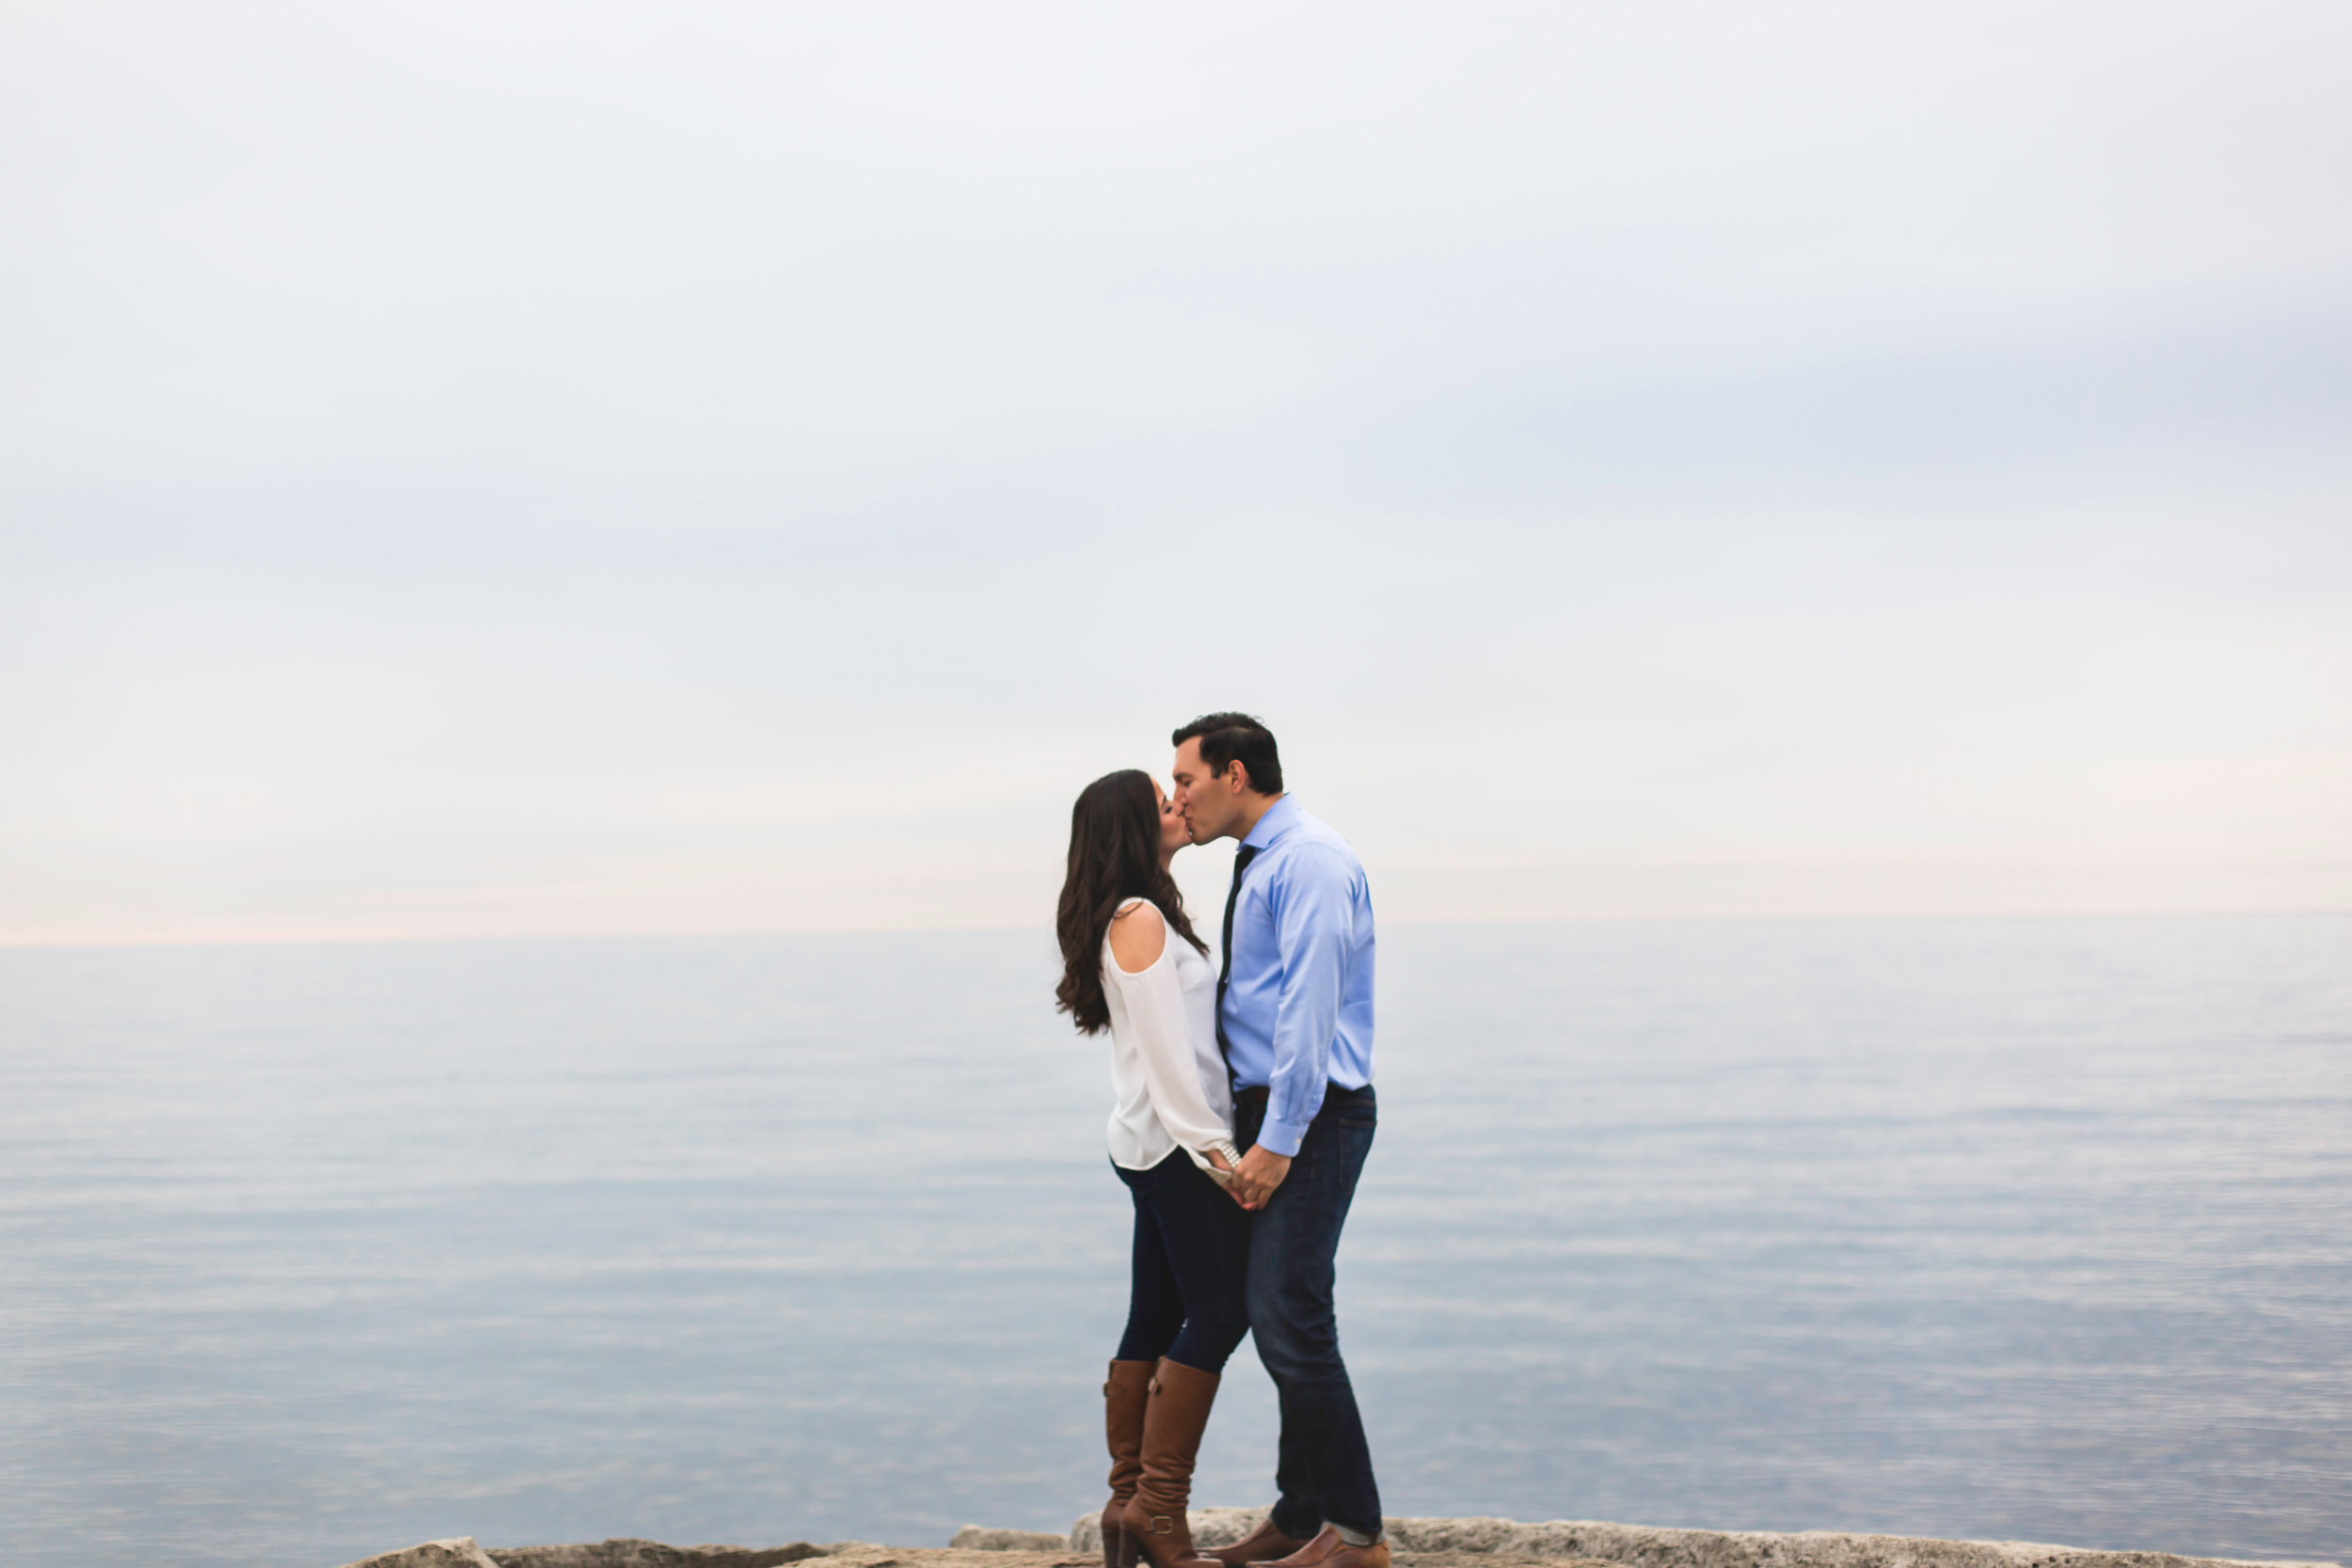 Engagement-Photography-Toronto-Skyline-City-Waterfront-HumberBay-Hamilton-Burlington-Oakville-Niagara-Toronto-Wedding-Photographer-Photo-Image-5.png